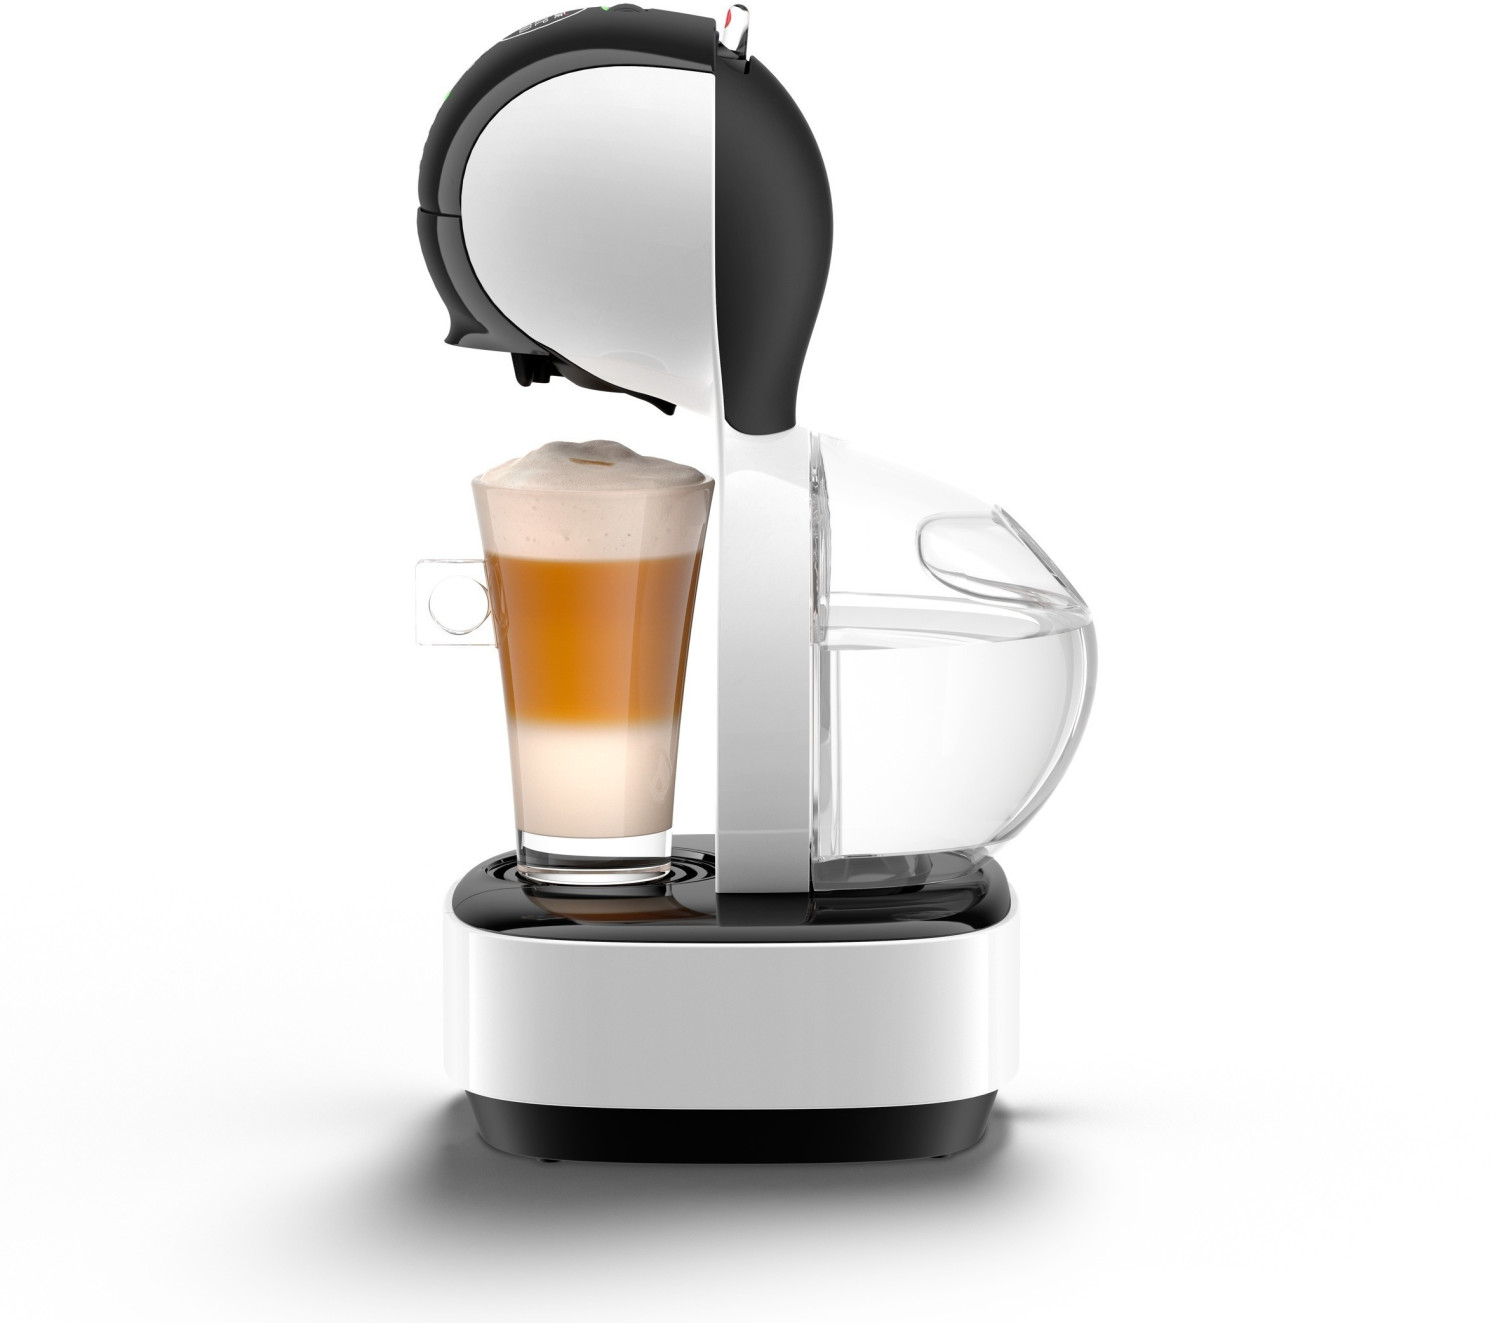 Image of Krups Dolce Gusto Lumio KP1301